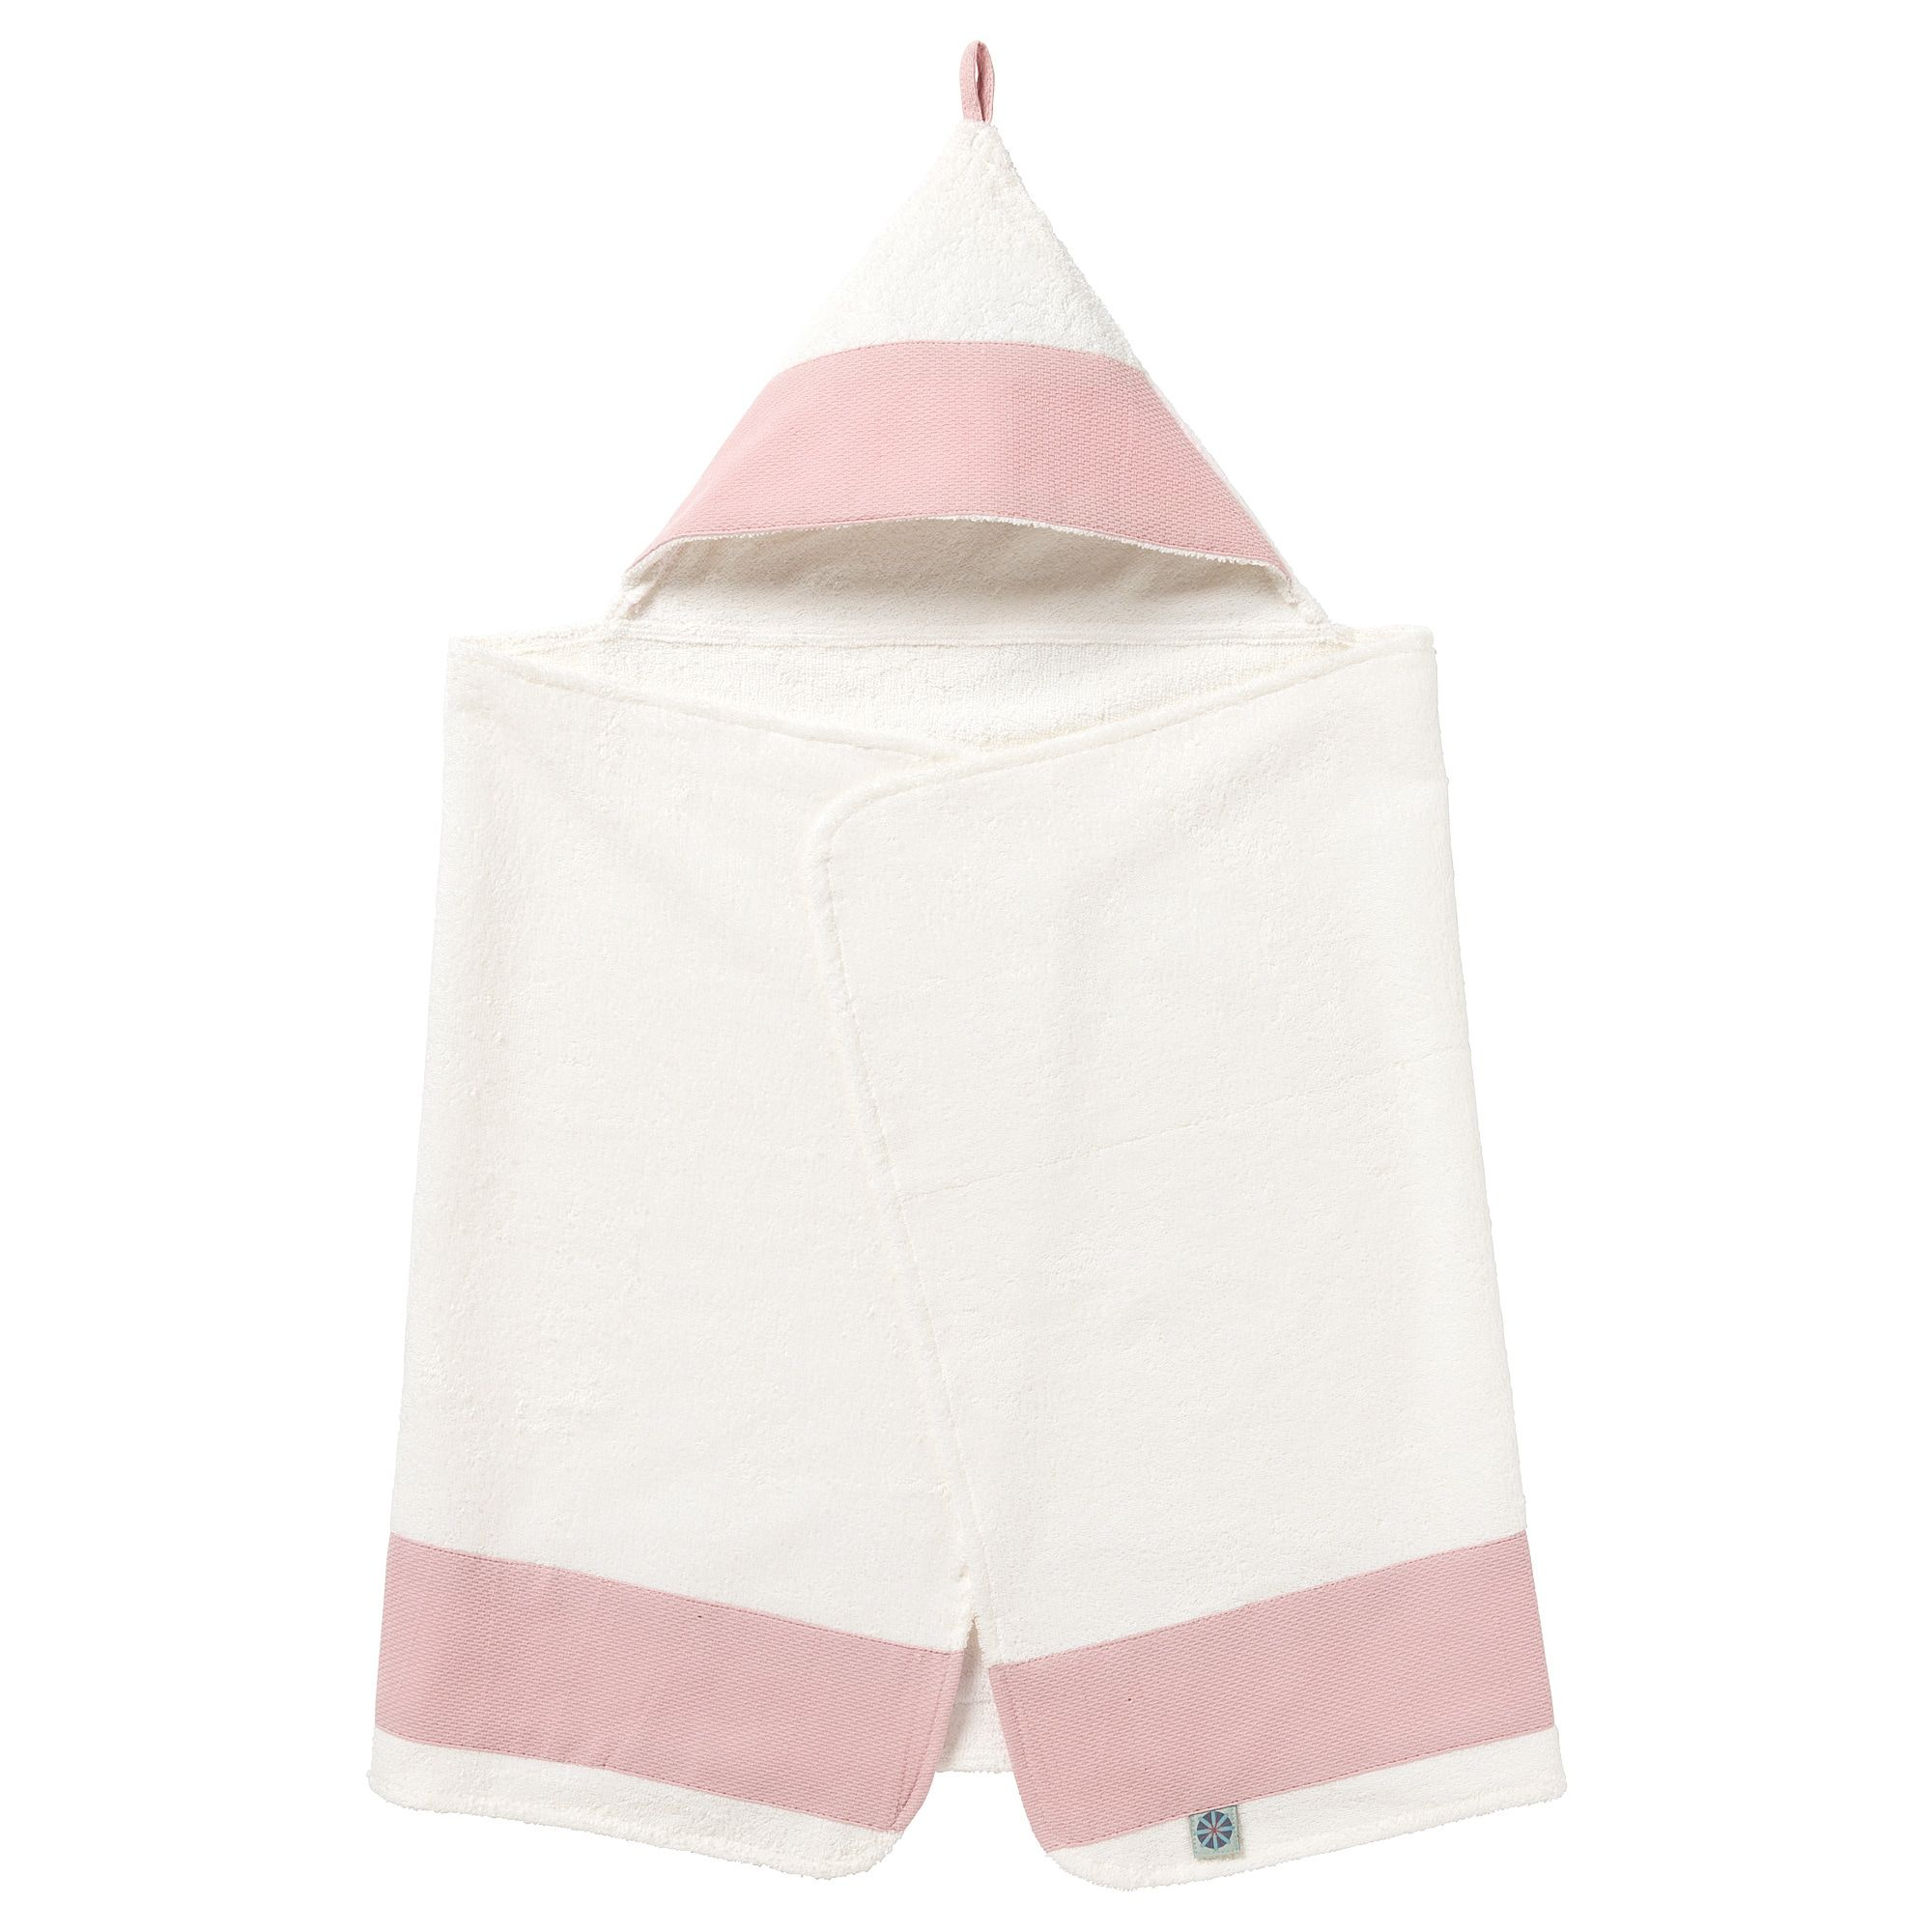 Ikea Tillgiven White Pink Baby Towel With Hood Baby Towel Ikea